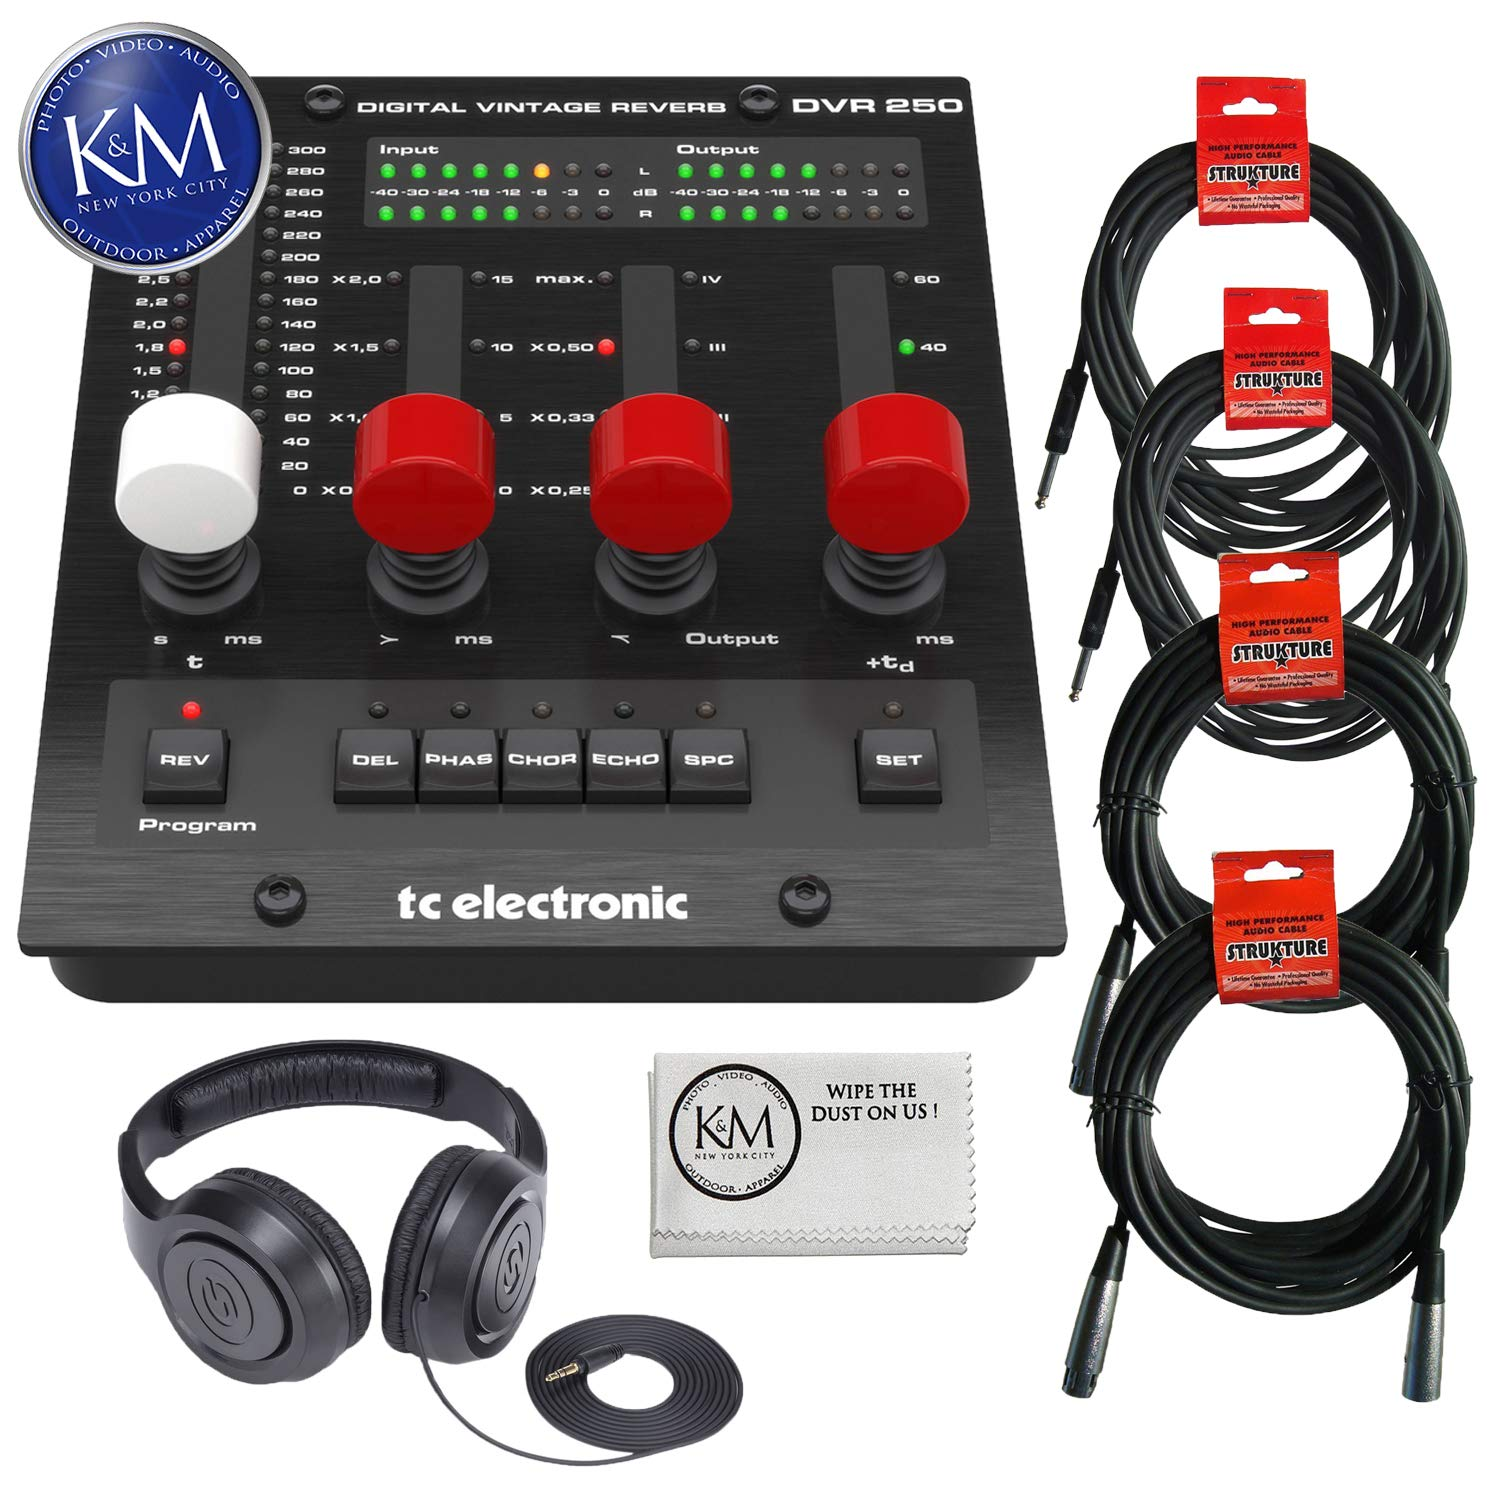 TC Electronic DVR250-DT Digital Vintage Reverb Effects Processor (Hardware Controller & Software) + SR350 Headphones + (2) Instrument Cables + (2) XLR Cables + K&M Cloth Bundle